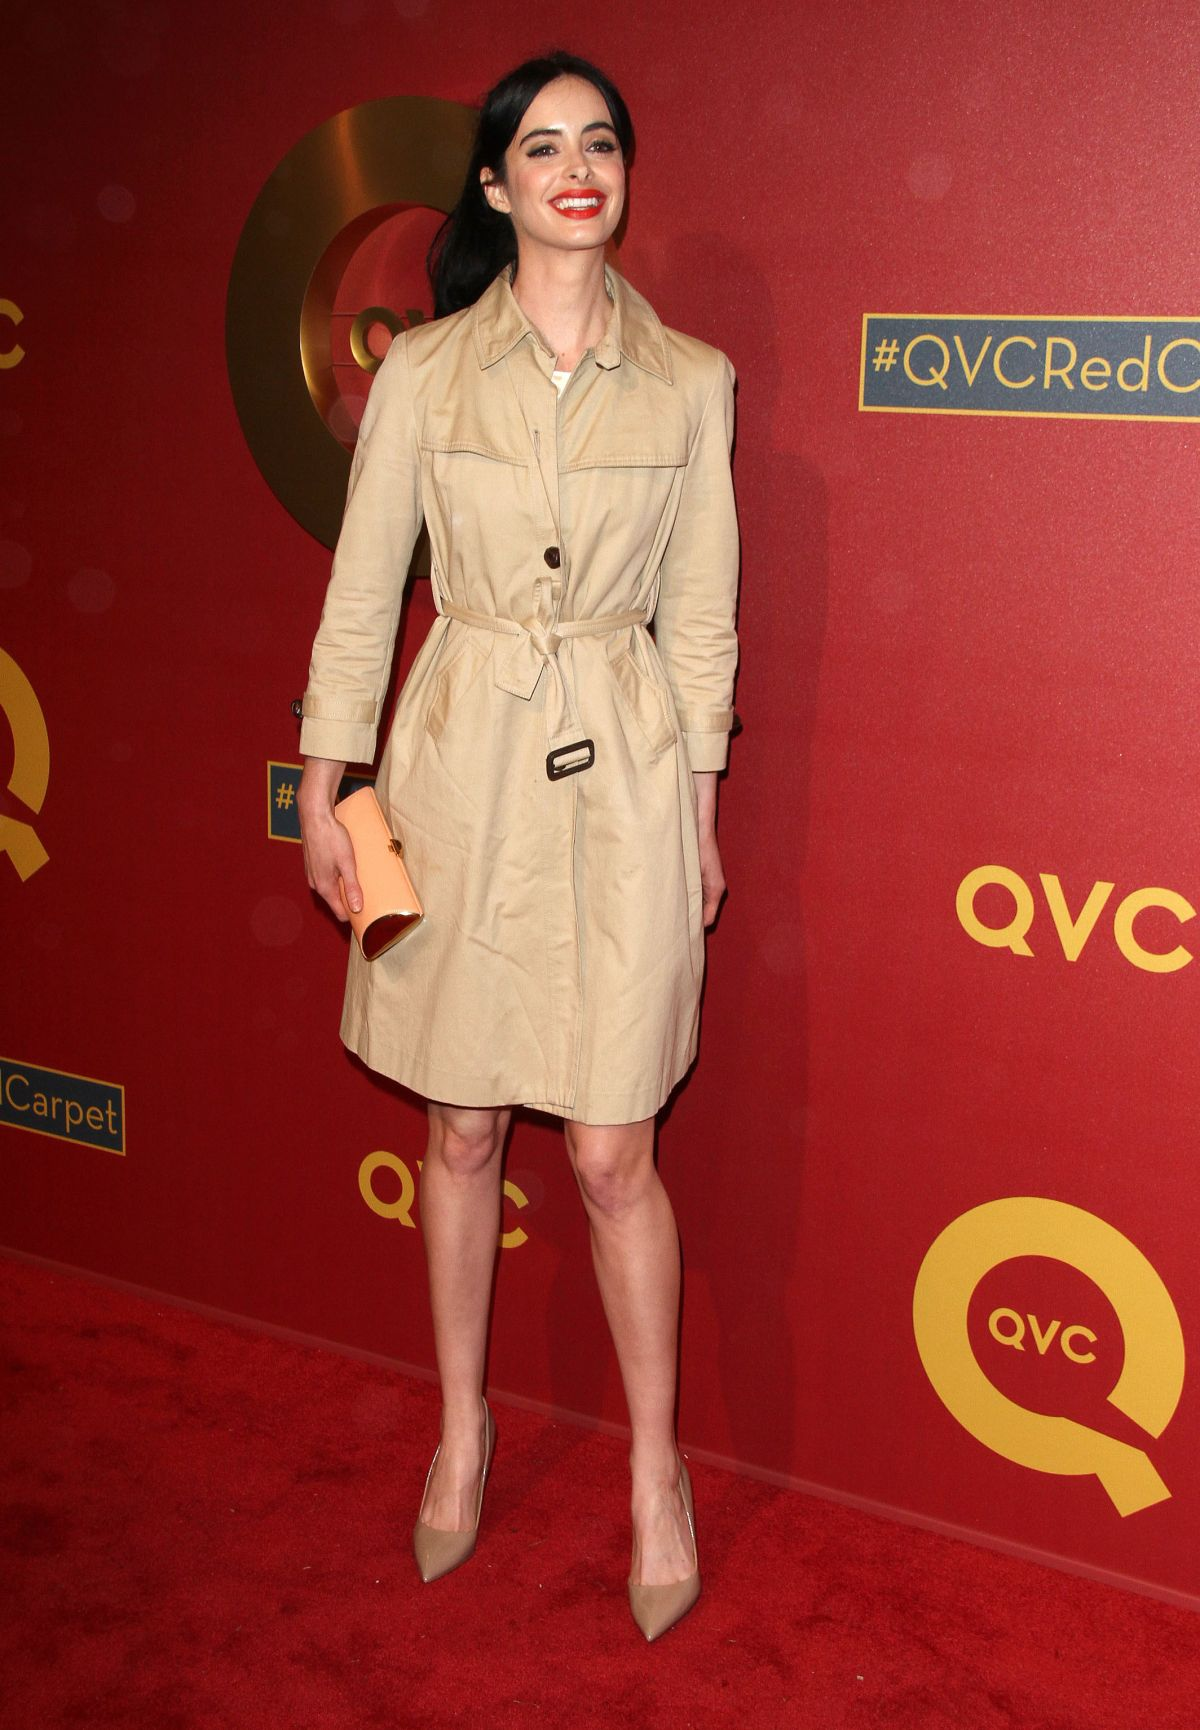 KRYSTEN RITTER at QVC 5th Annual Red Carpet Style Event in Beverly Hills